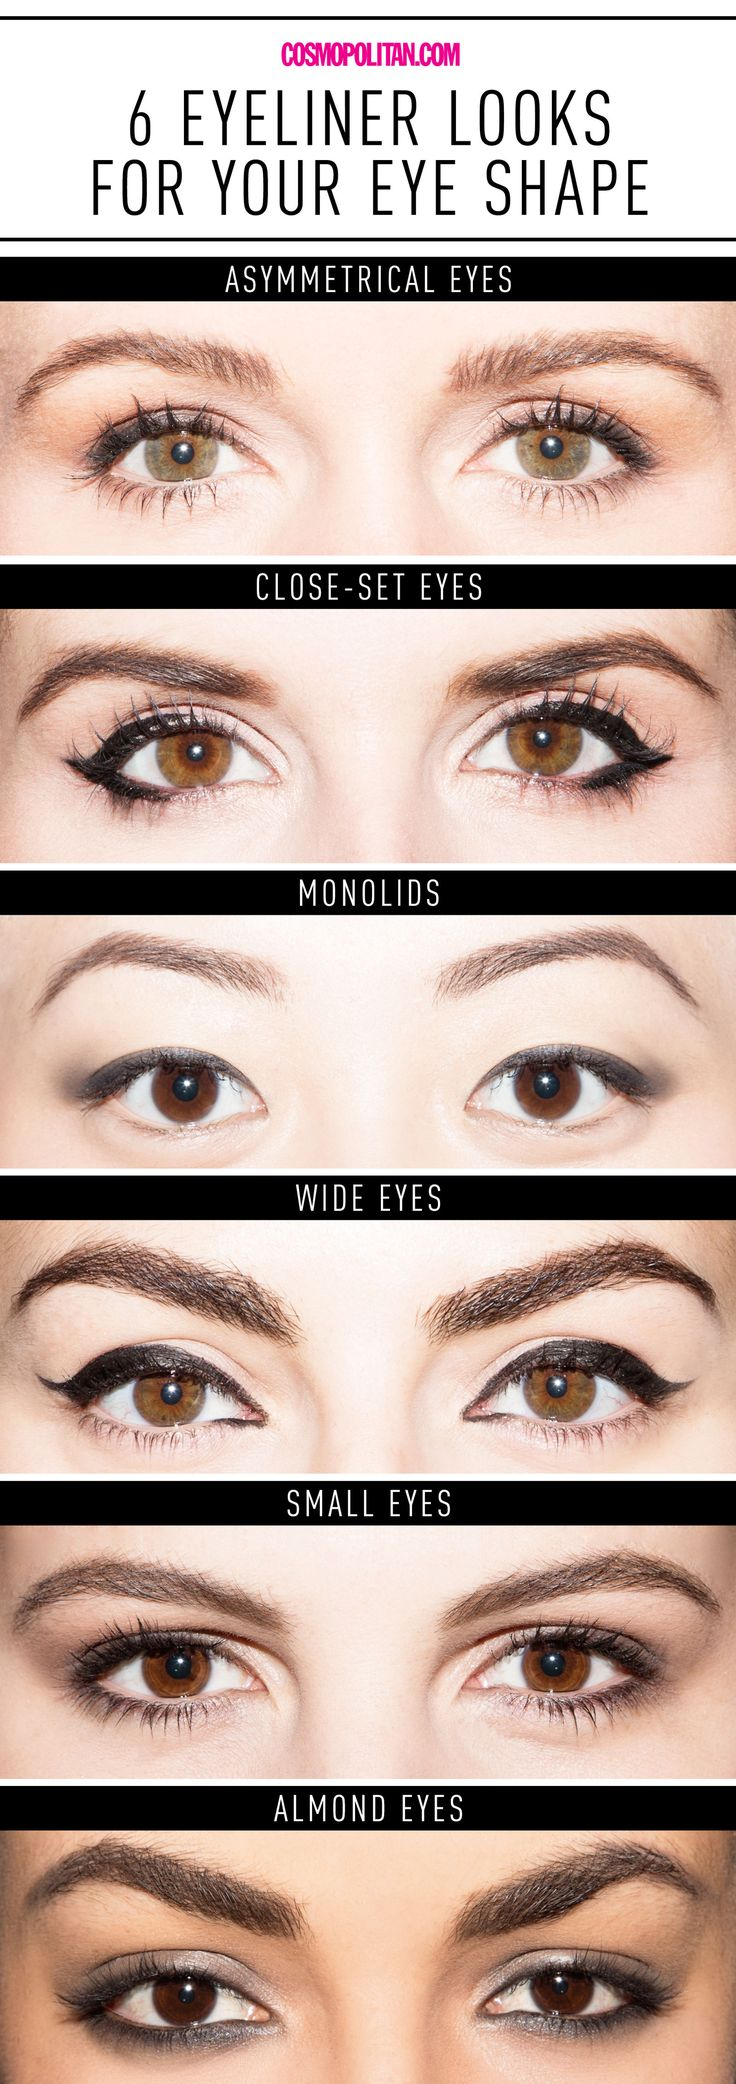 102 Best Makeup Tips For The Eyes Images On Pinterest Maquiagem